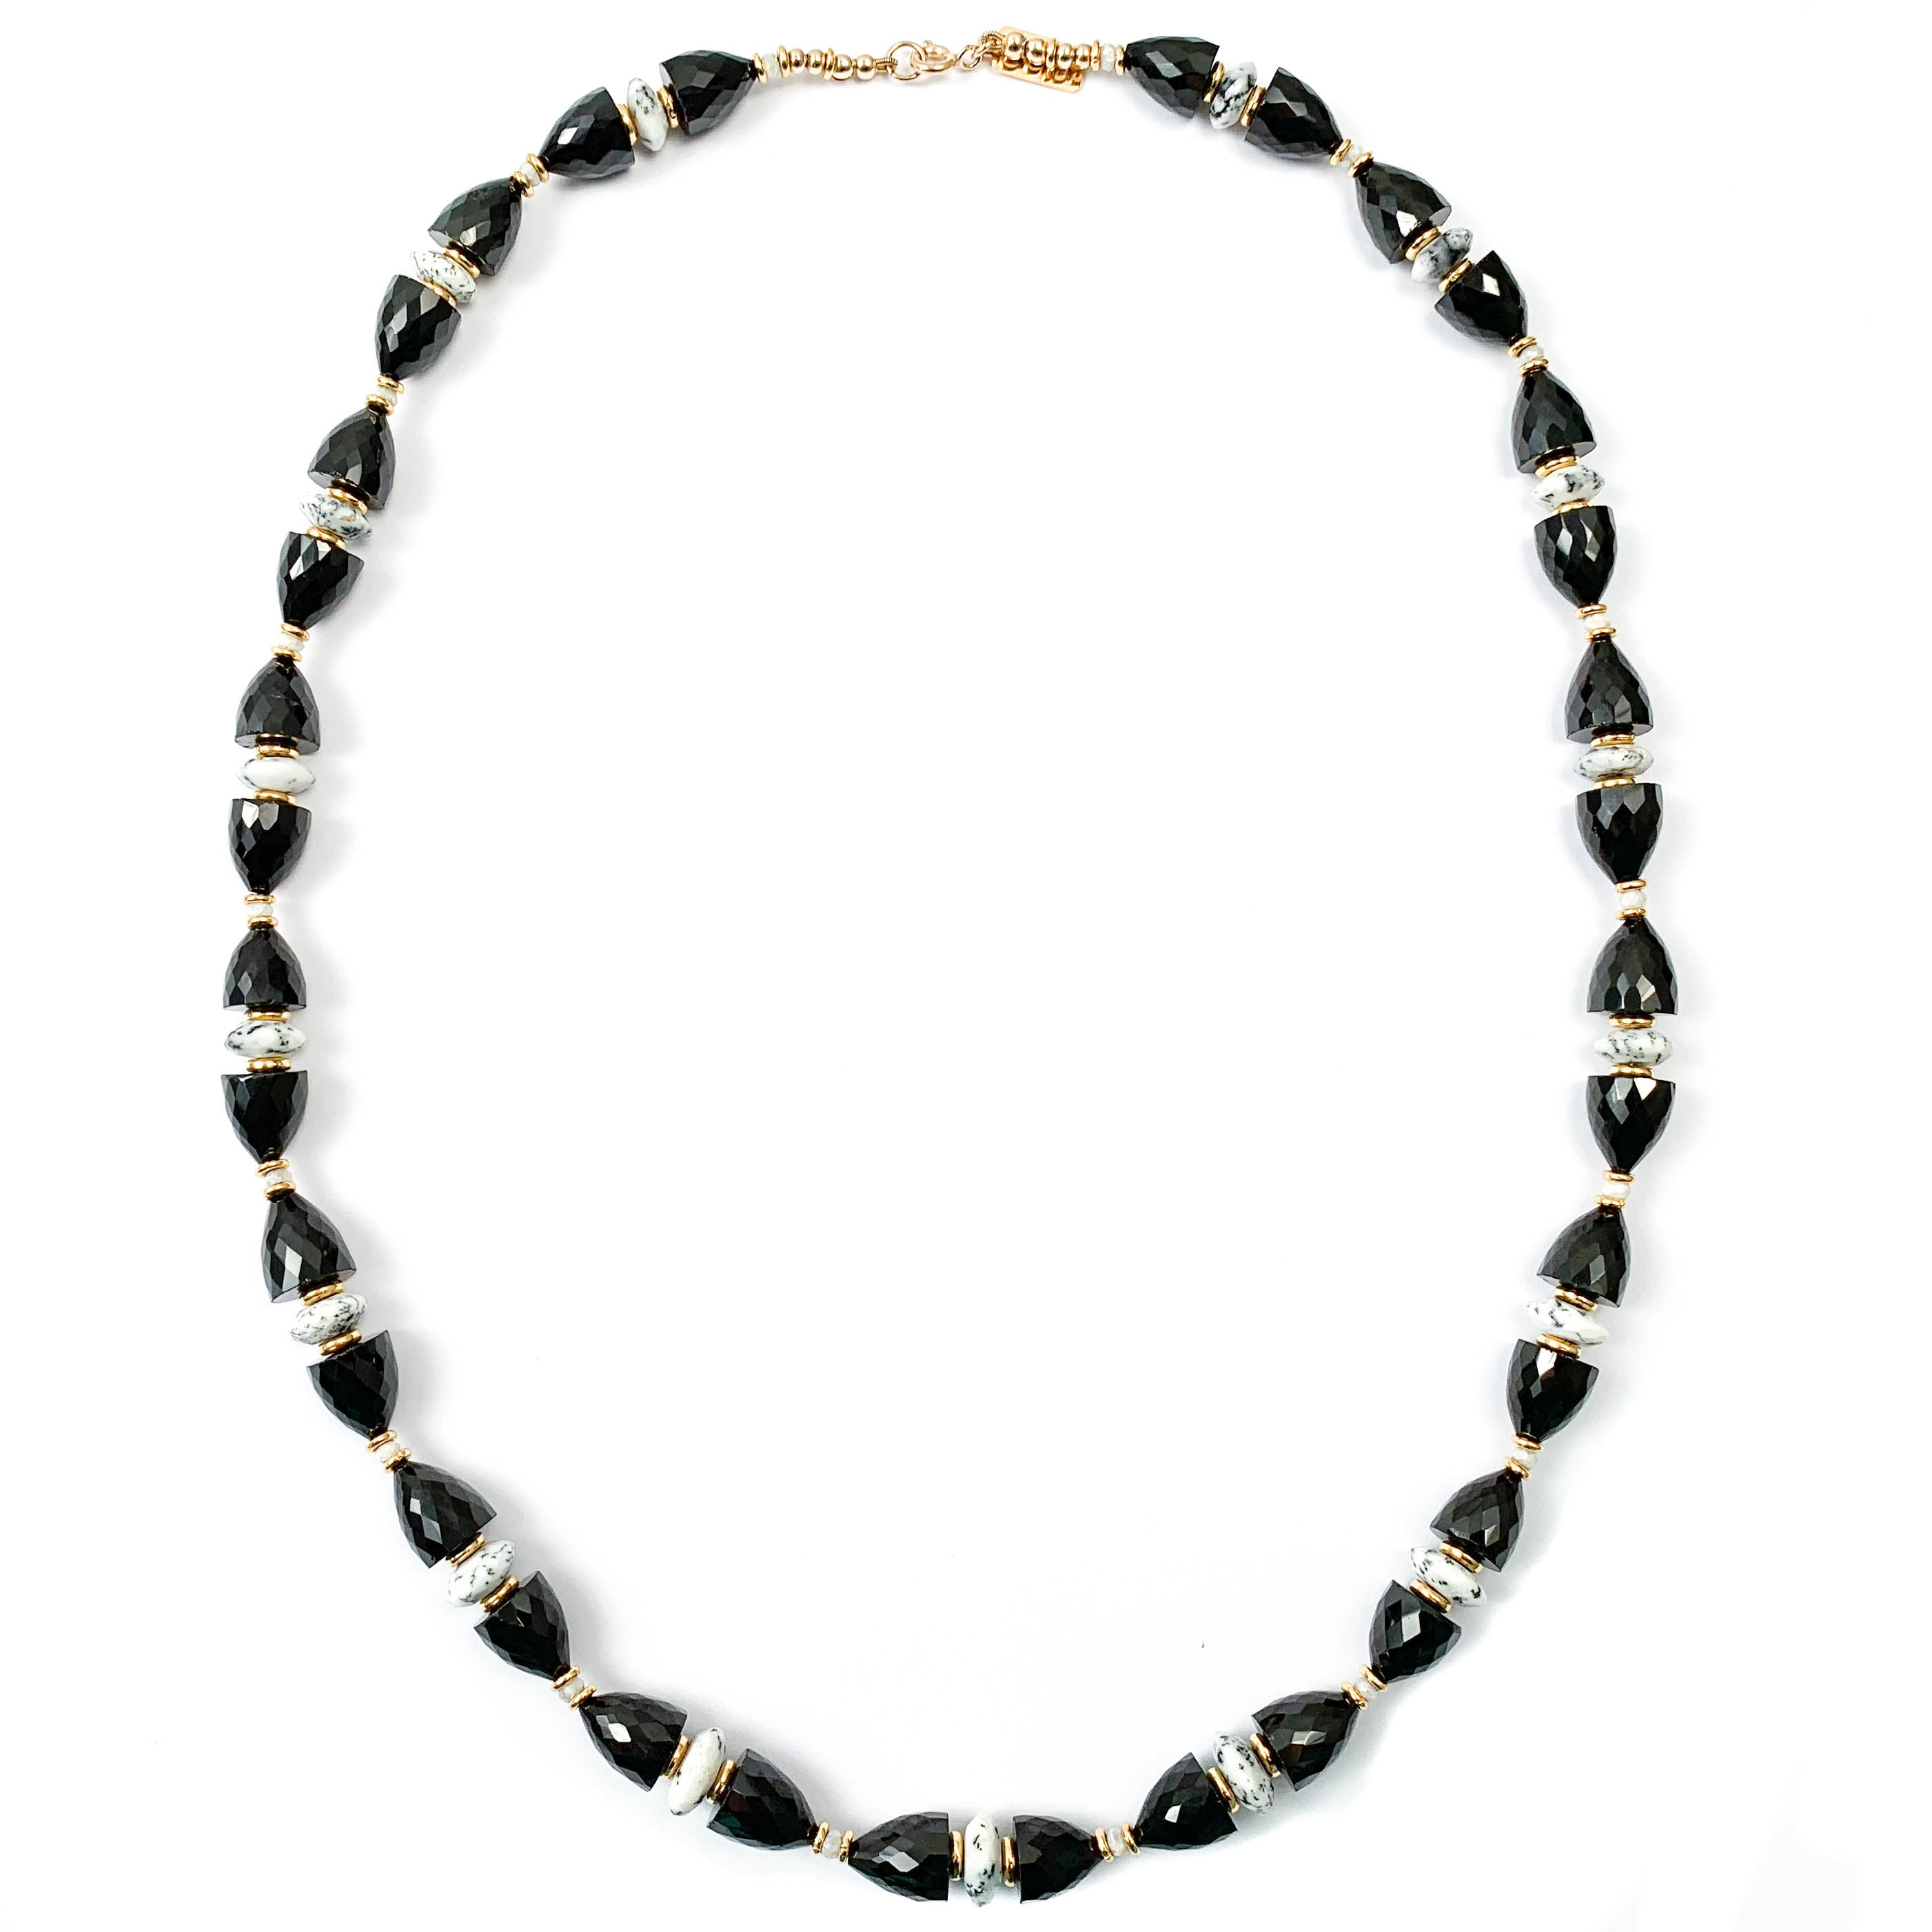 Black Spinel & White Dendritic Opal Necklace